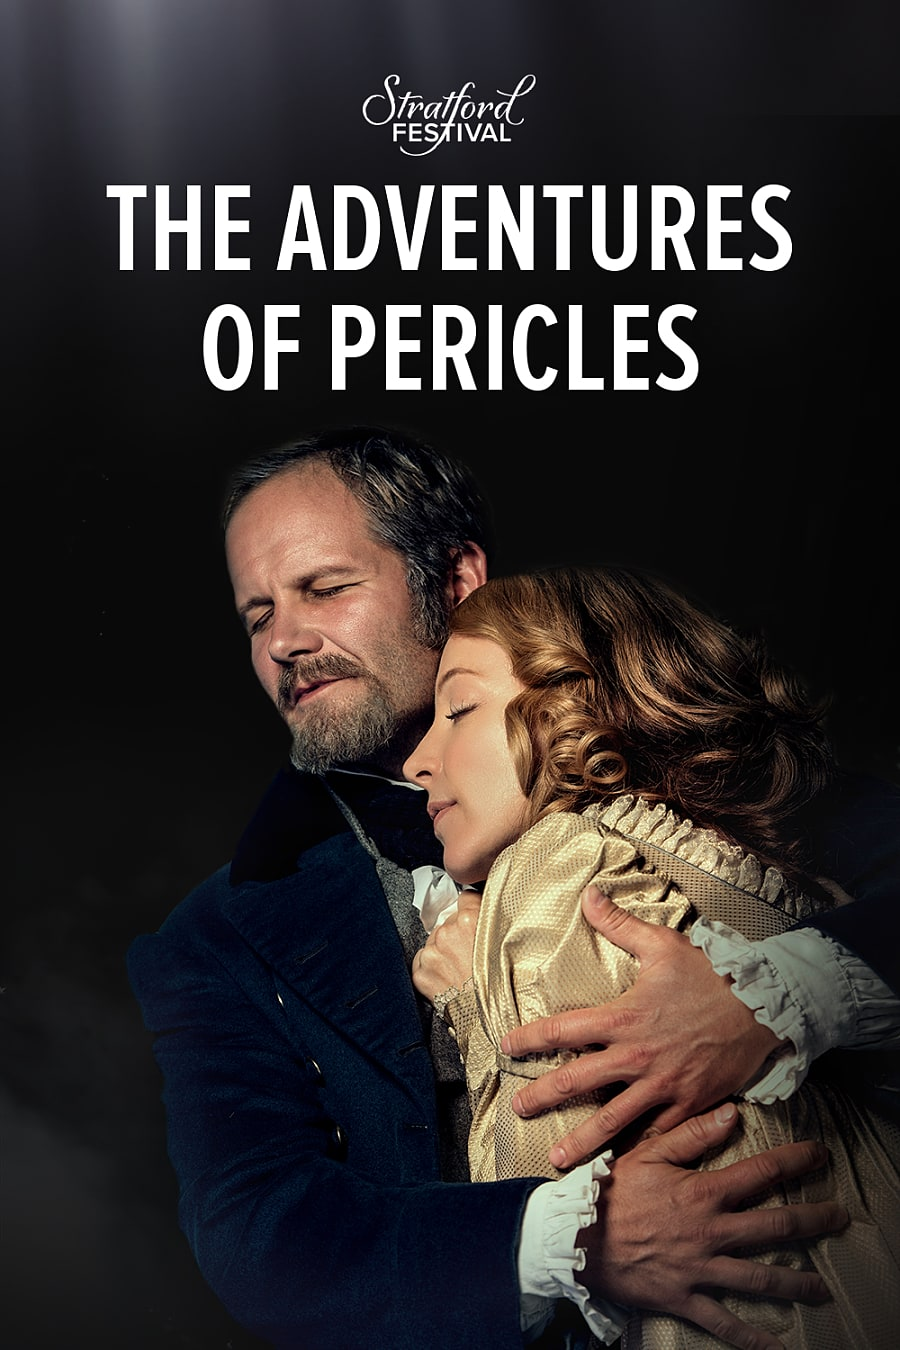 The Adventures of Pericles cover image